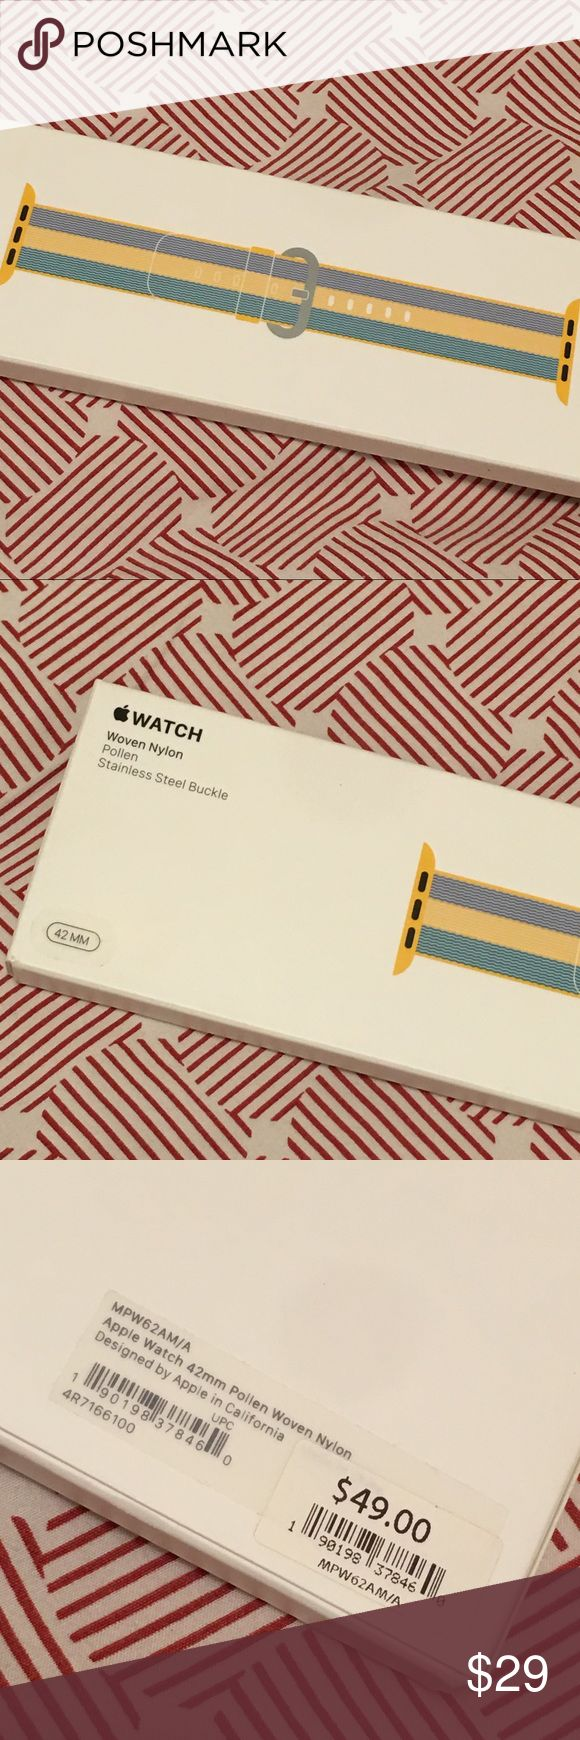 Buckle for Apple Watch. Woven Nylon Stainless Steel Buckle for Apple Watch in color pollen. Never worn. Never open in original box. Price is firm! Apple Watch Accessories Watches